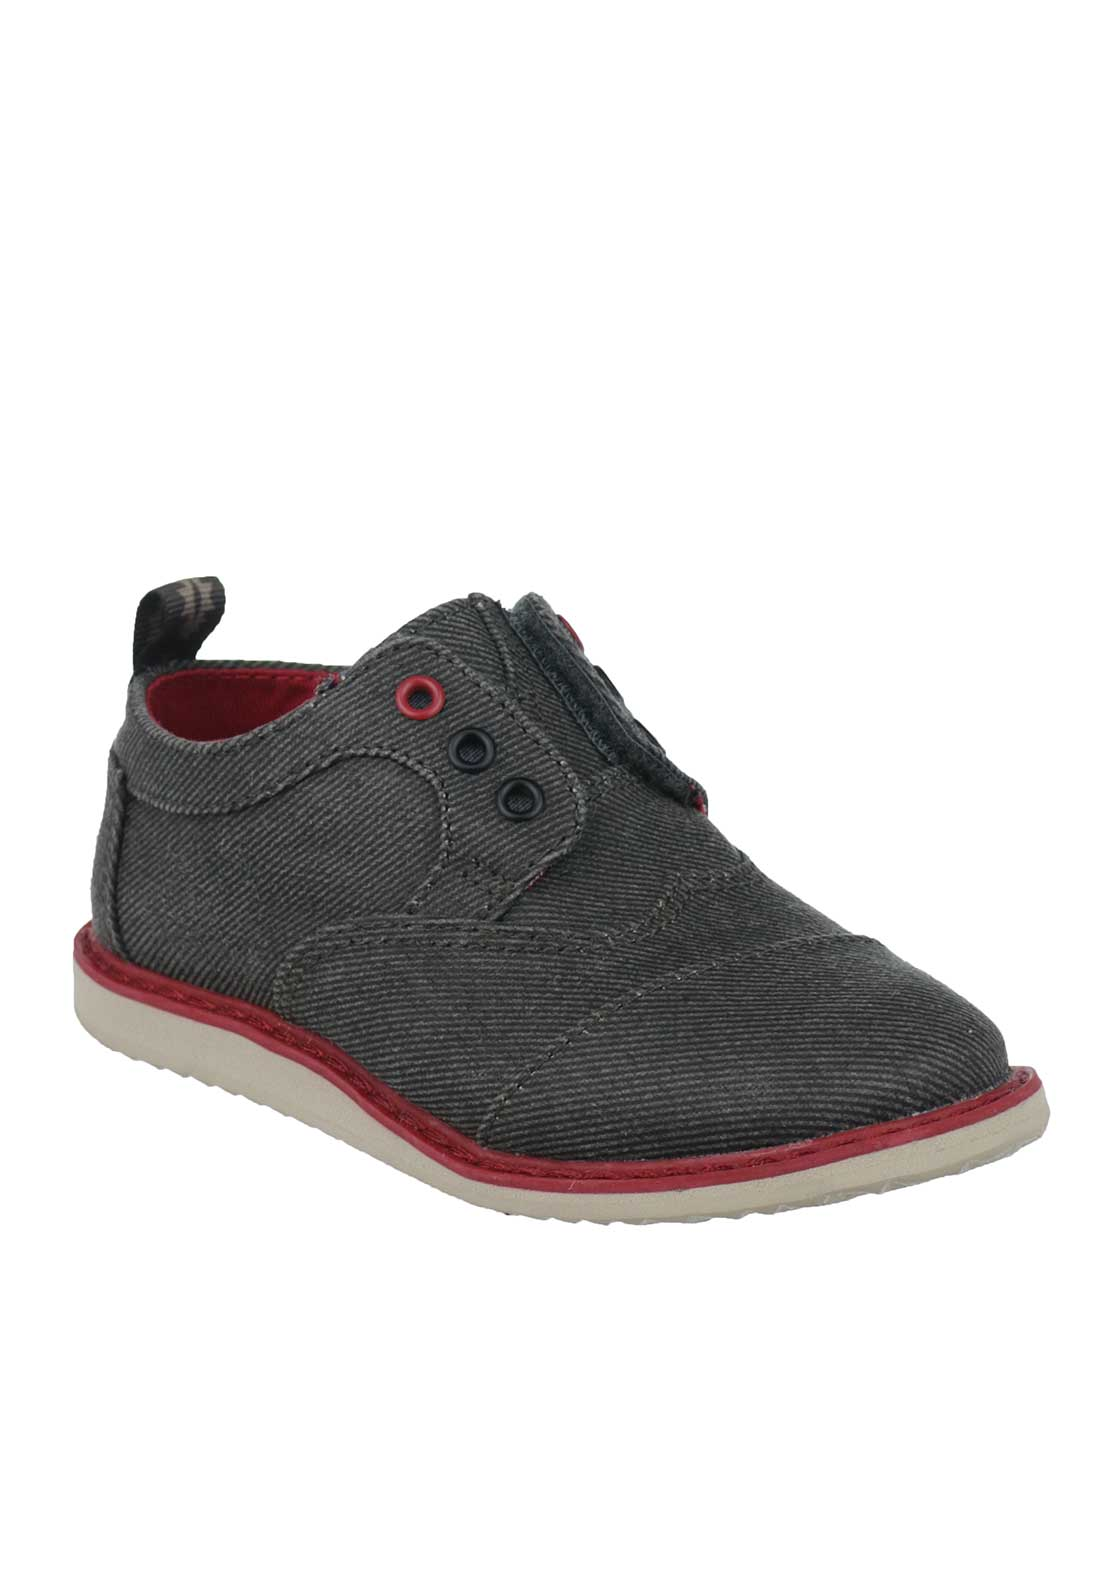 TOMS Baby Boys Velcro Brogue Shoes, Grey